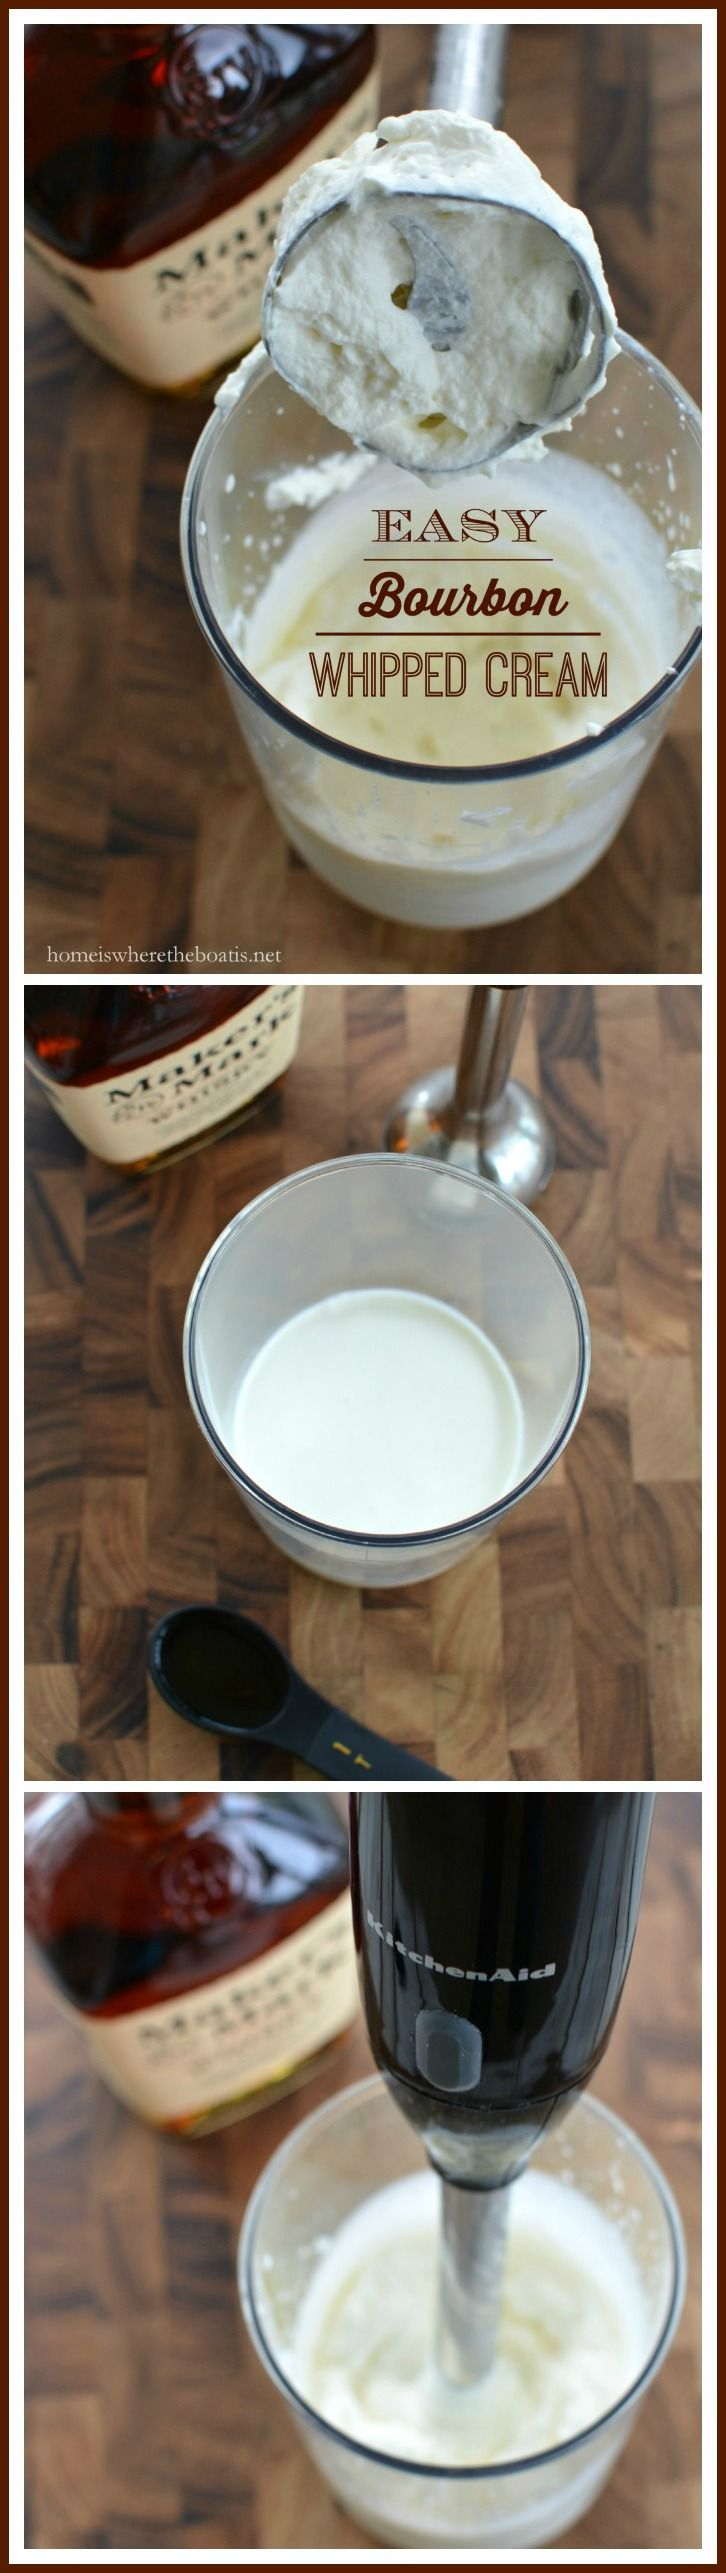 Bourbon Whipped Cream made quick and easy with your immersion blender! | homeiswheretheboatis.net #KentuckyDerby #recipe #easy